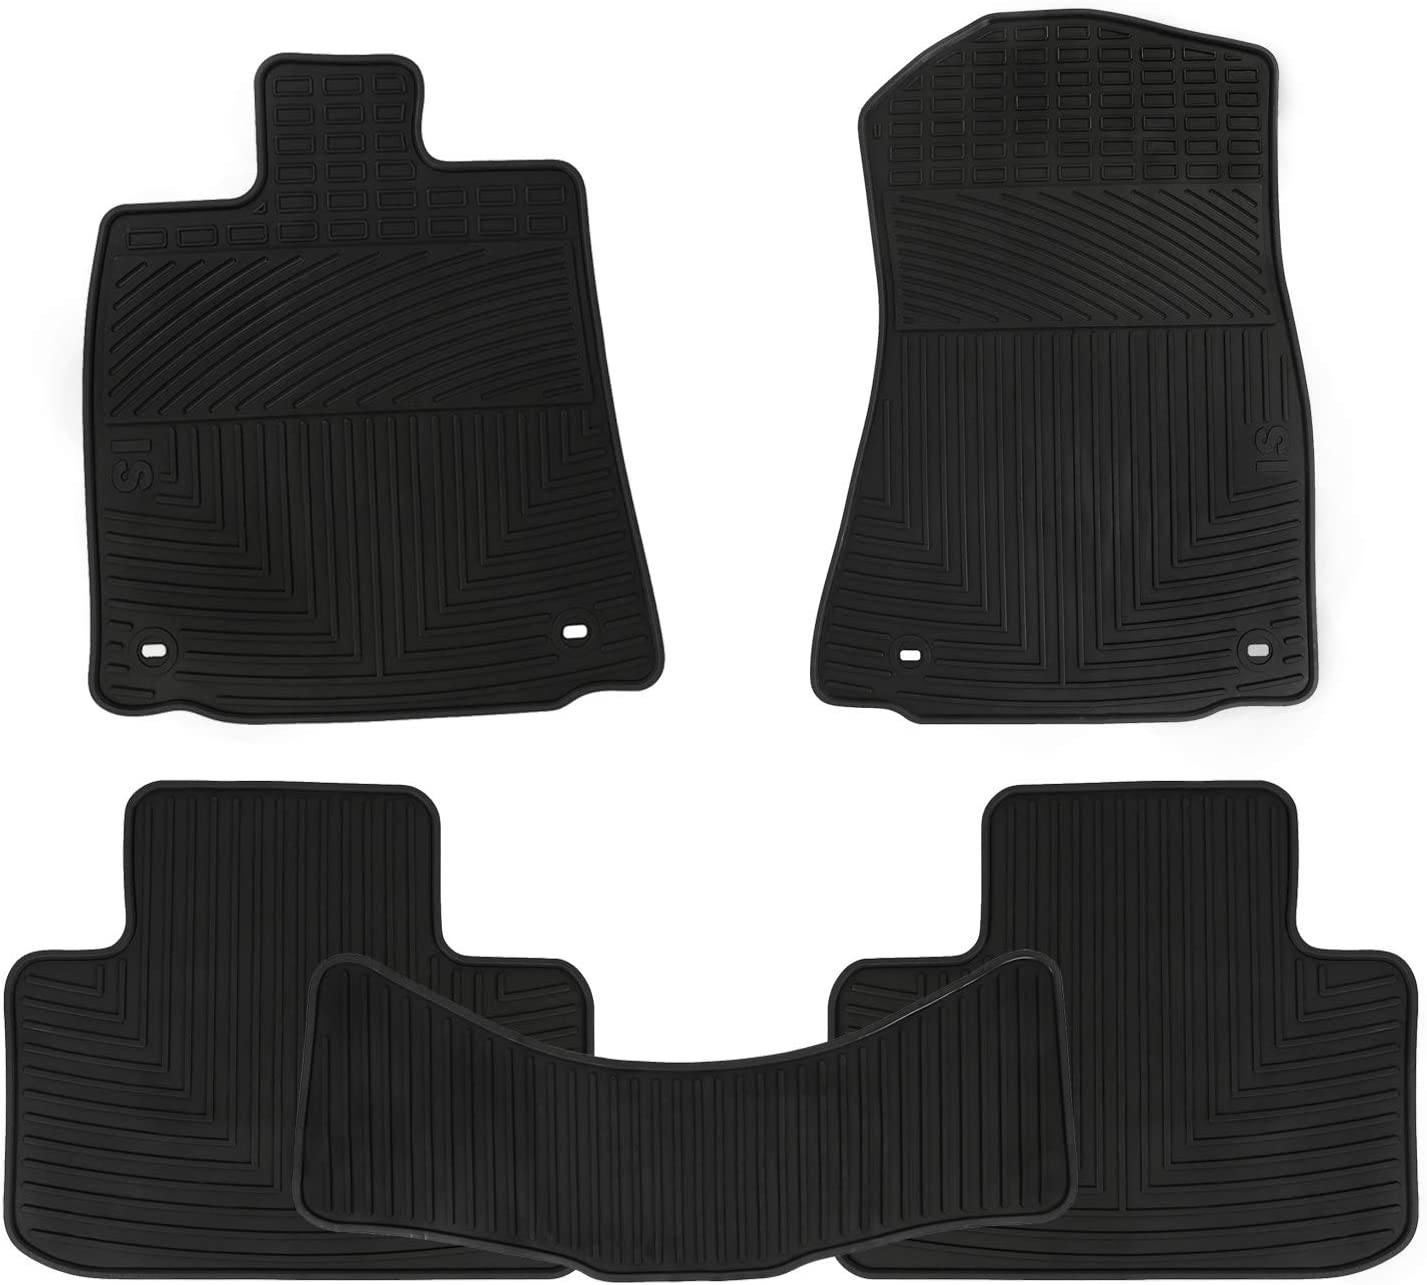 RWD//2WD 2013 2014 2015 2016 2017 2018 2019 Custom Fit Full Black Rubber Car Floor Liners Set All Weather Heavy Duty Odorless San Auto Car Floor Mats Compatible with Lexus IS250 IS350 IS200T IS300